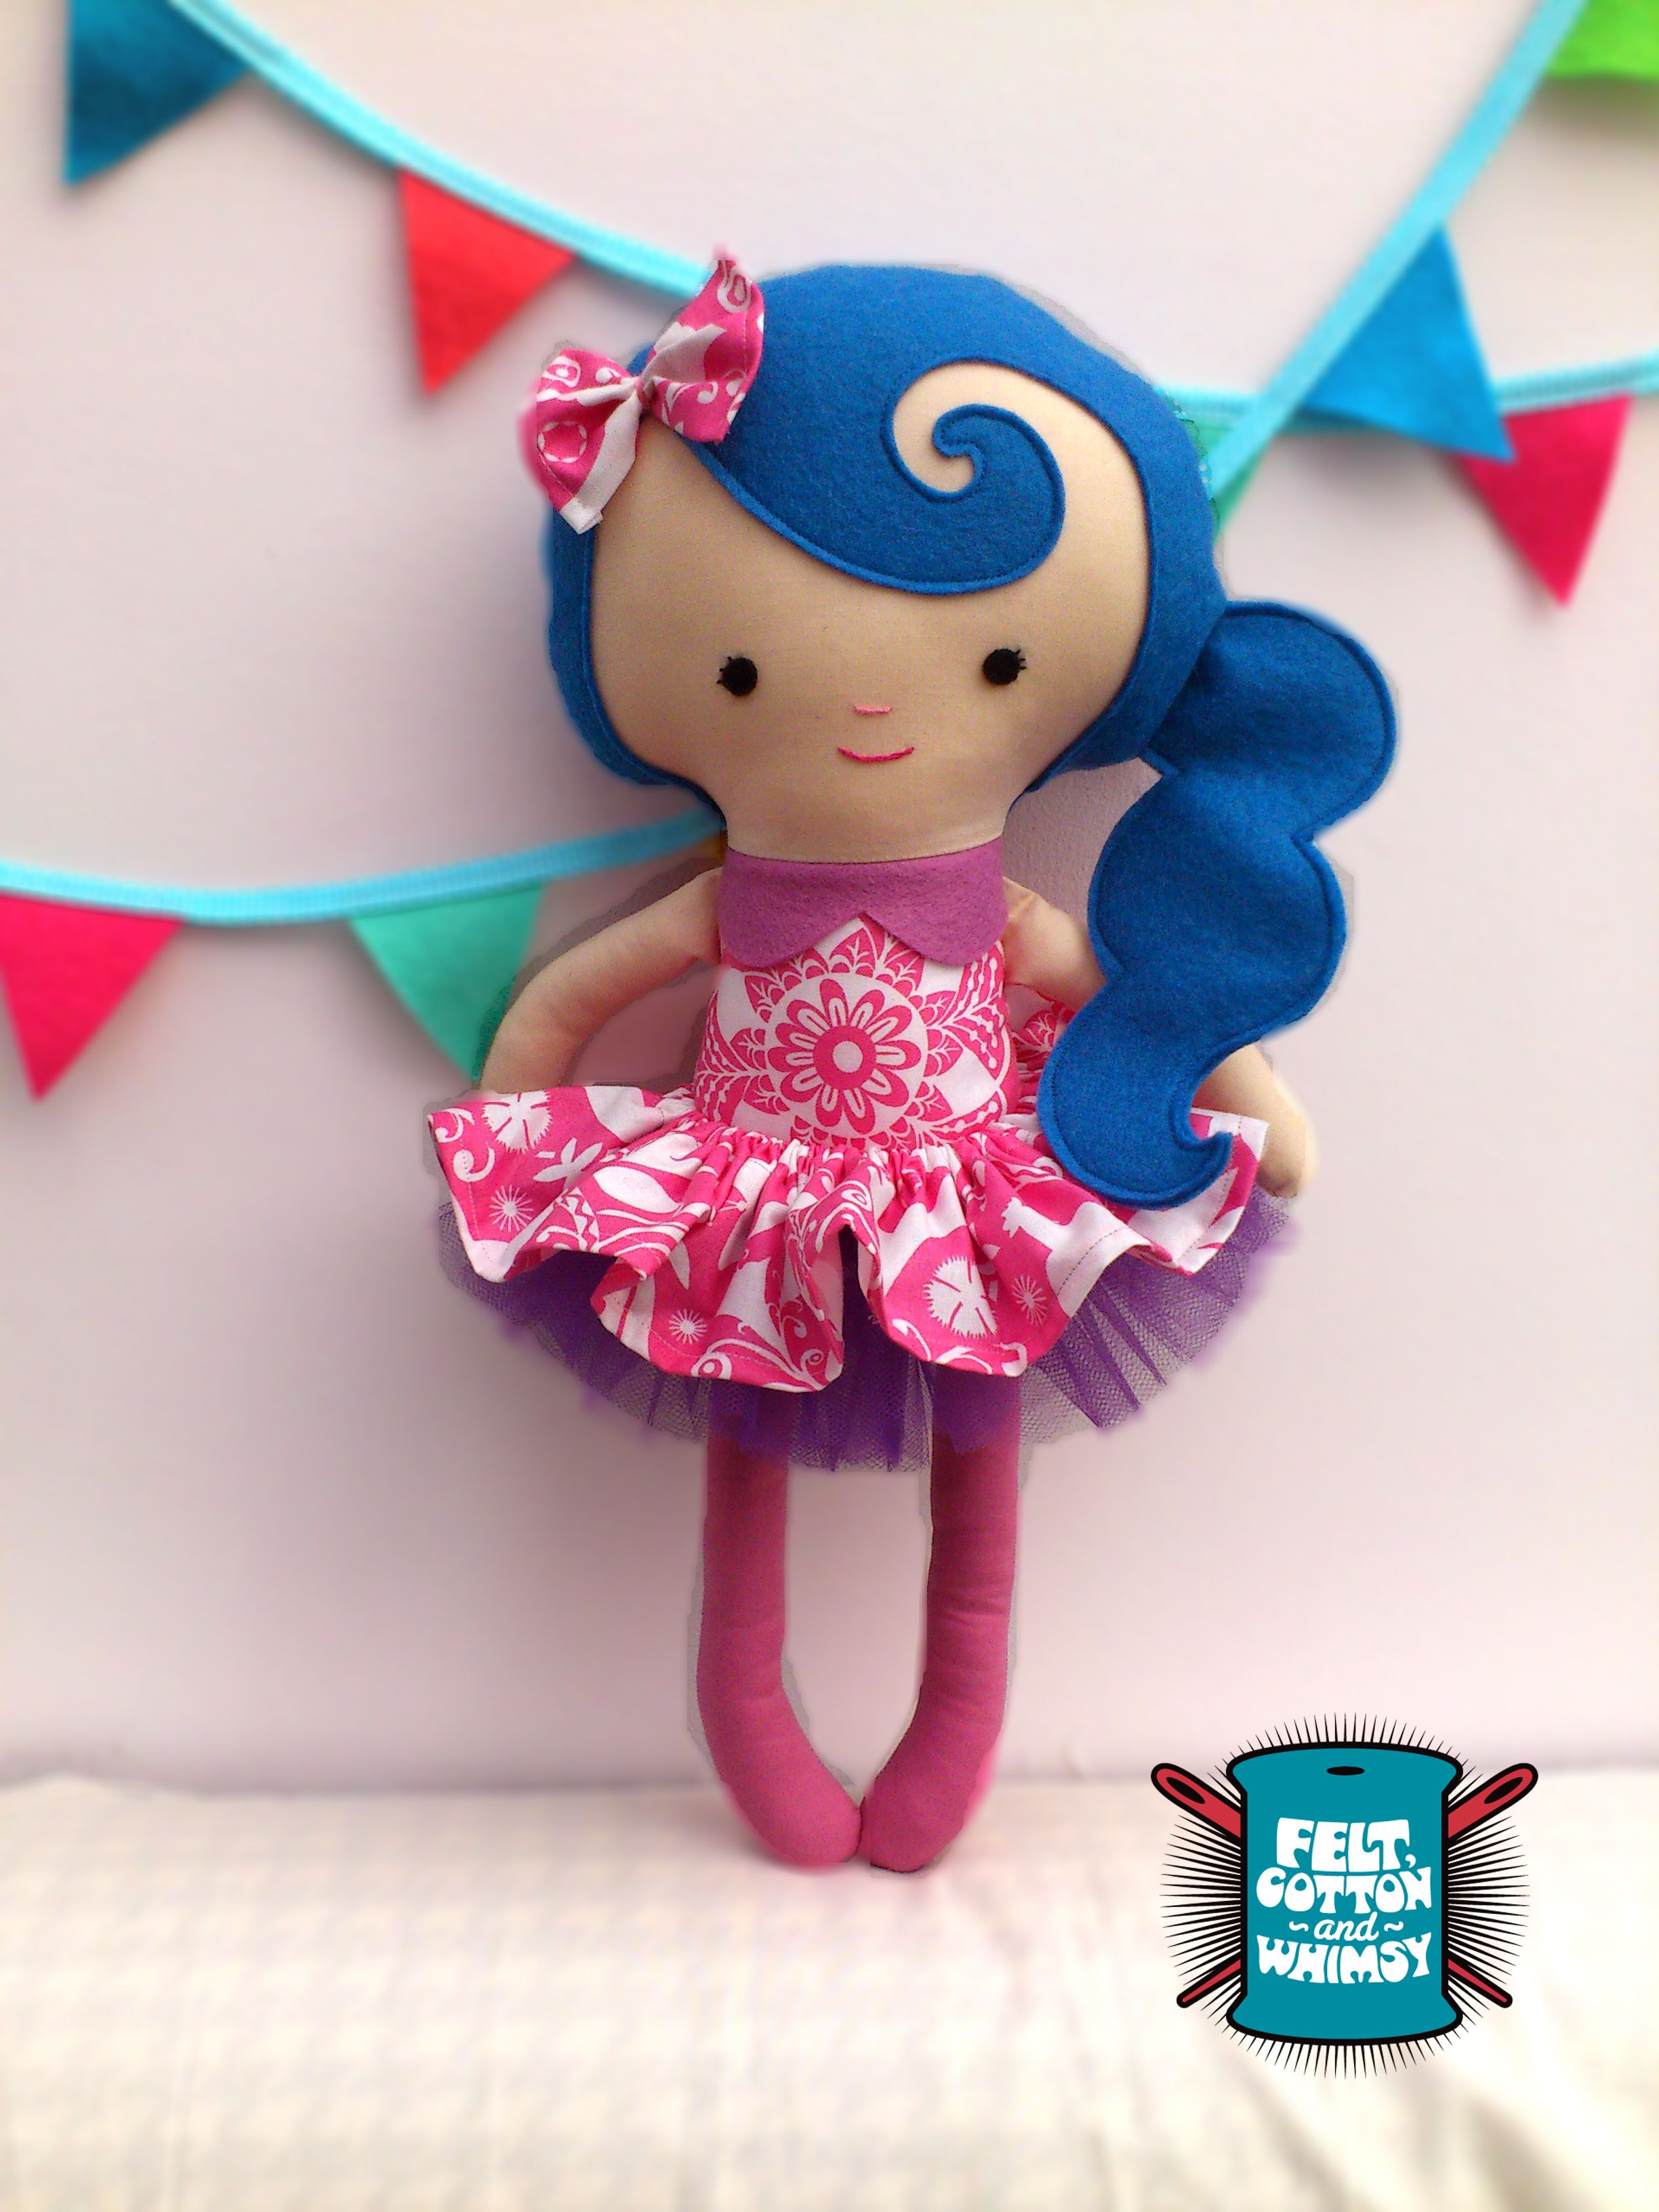 Toys and me images  CE Marked Soft Toy Doll Dolls handmade by me You can find my store